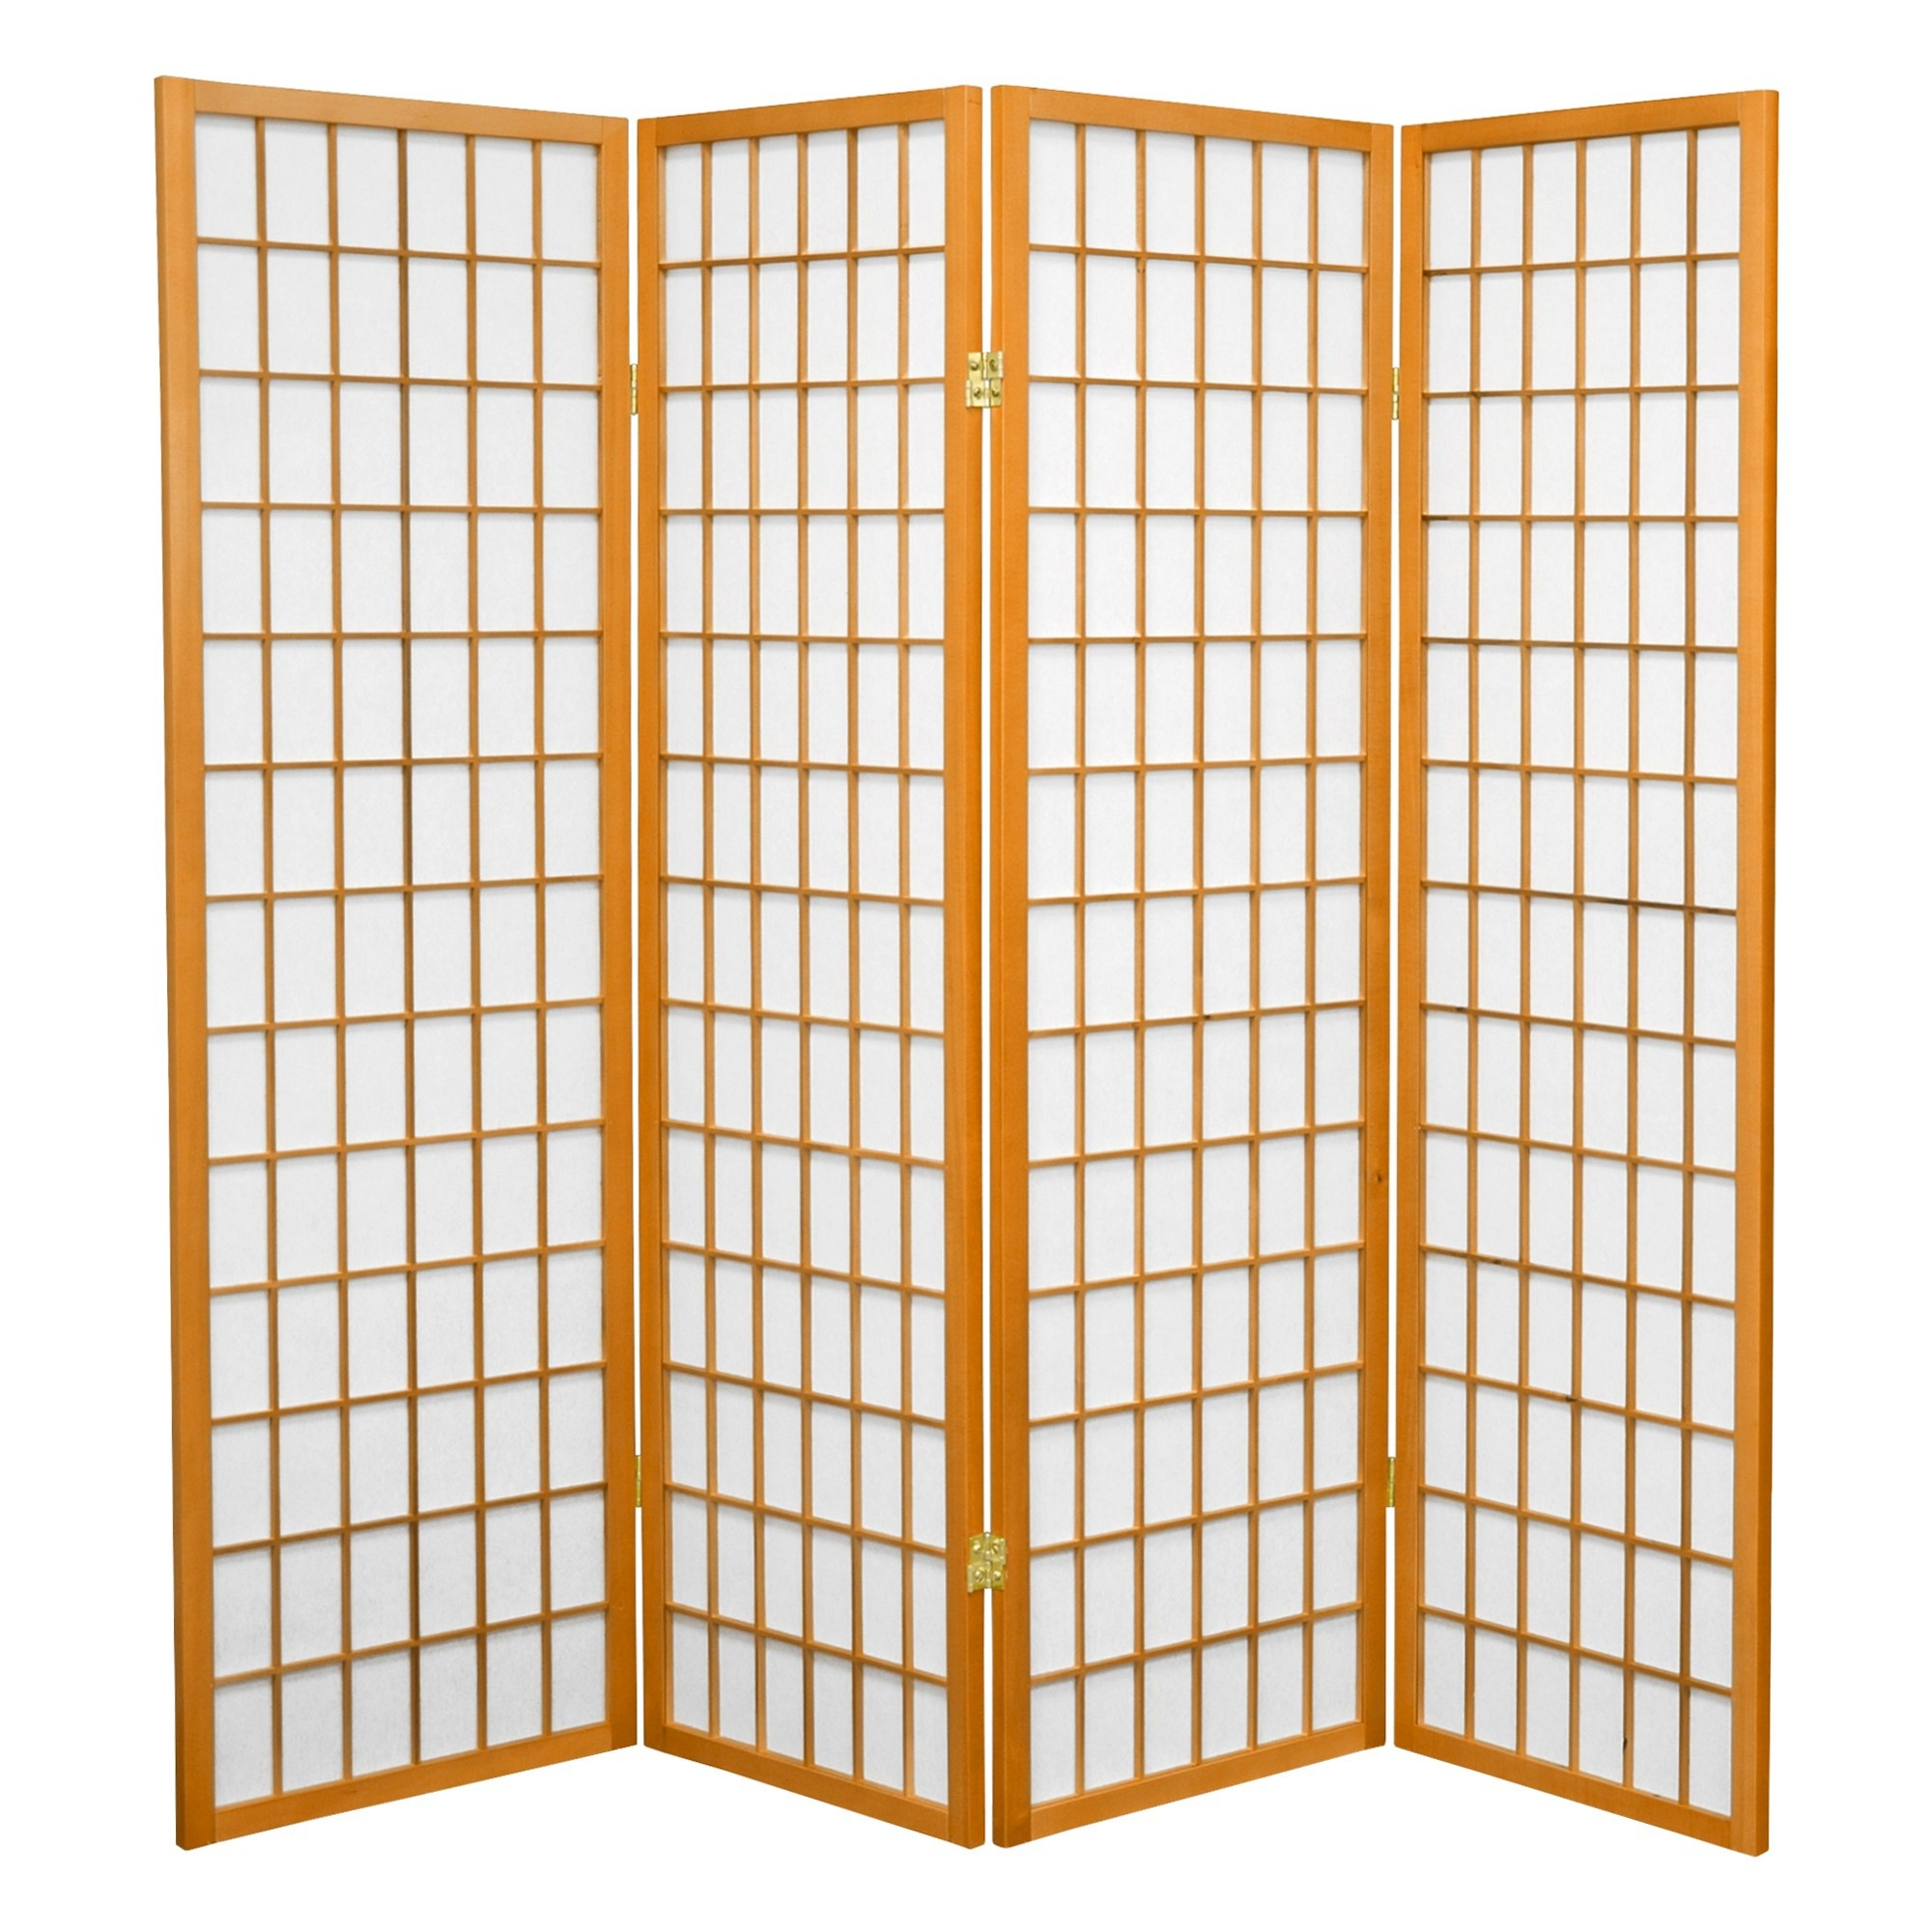 Rustikaler wohnzimmerspiegel  ft tall window pane shoji screen  honey  panels pumpkin